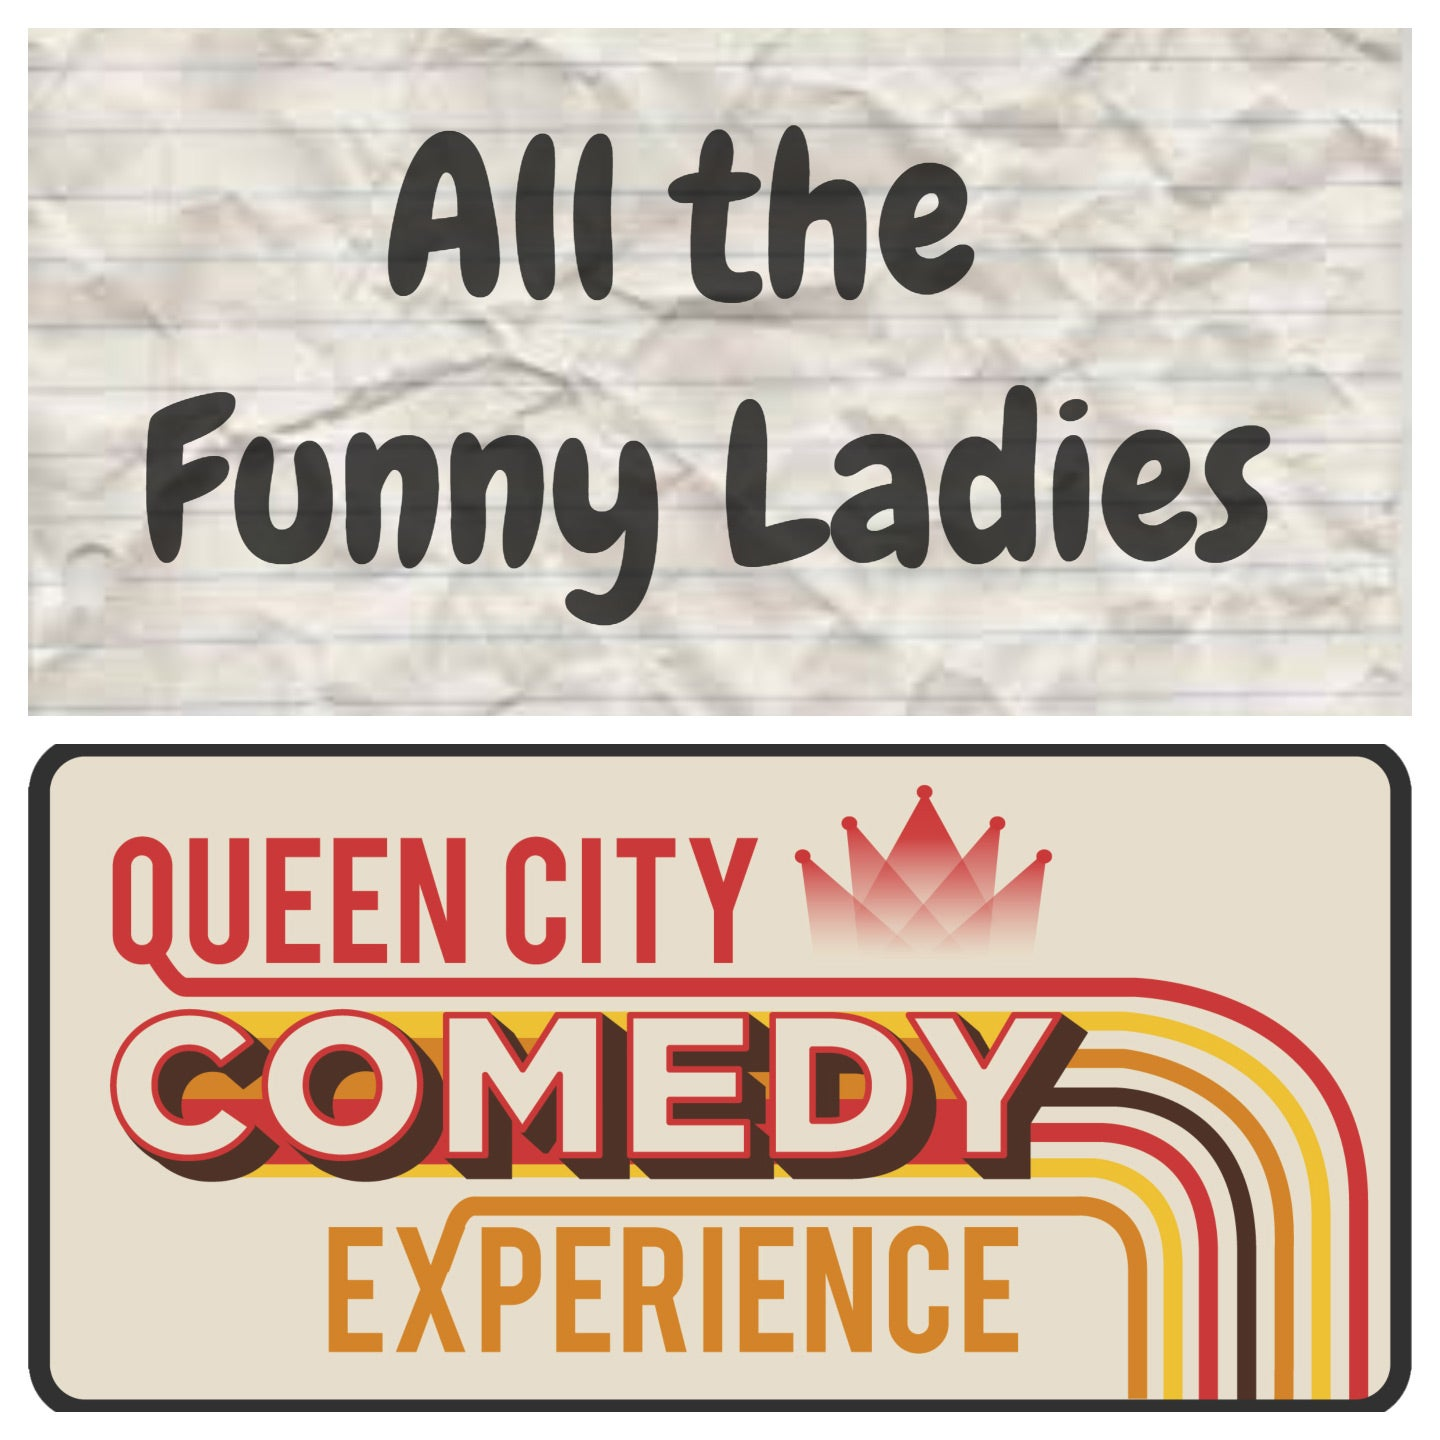 All the Funny Ladies